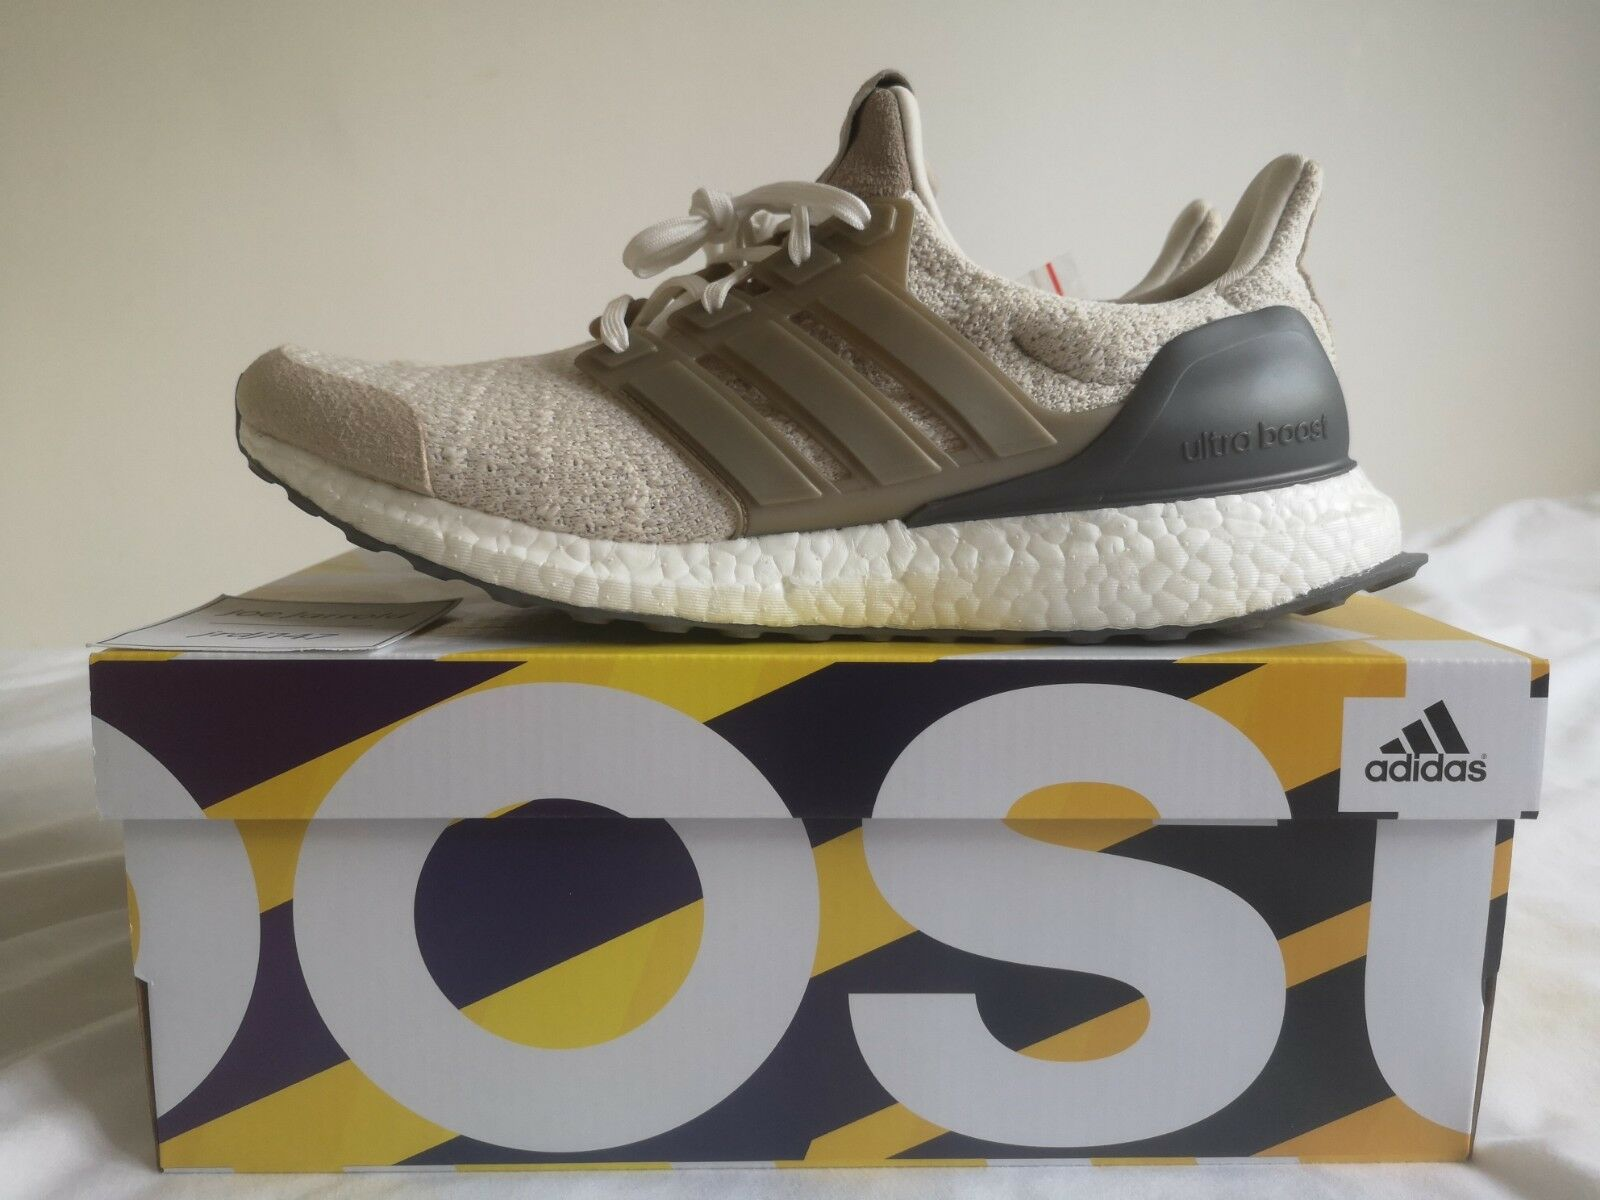 Adidas ultra impulso lux (db0338)uk8 / us8.5 us8.5 us8.5 e27049